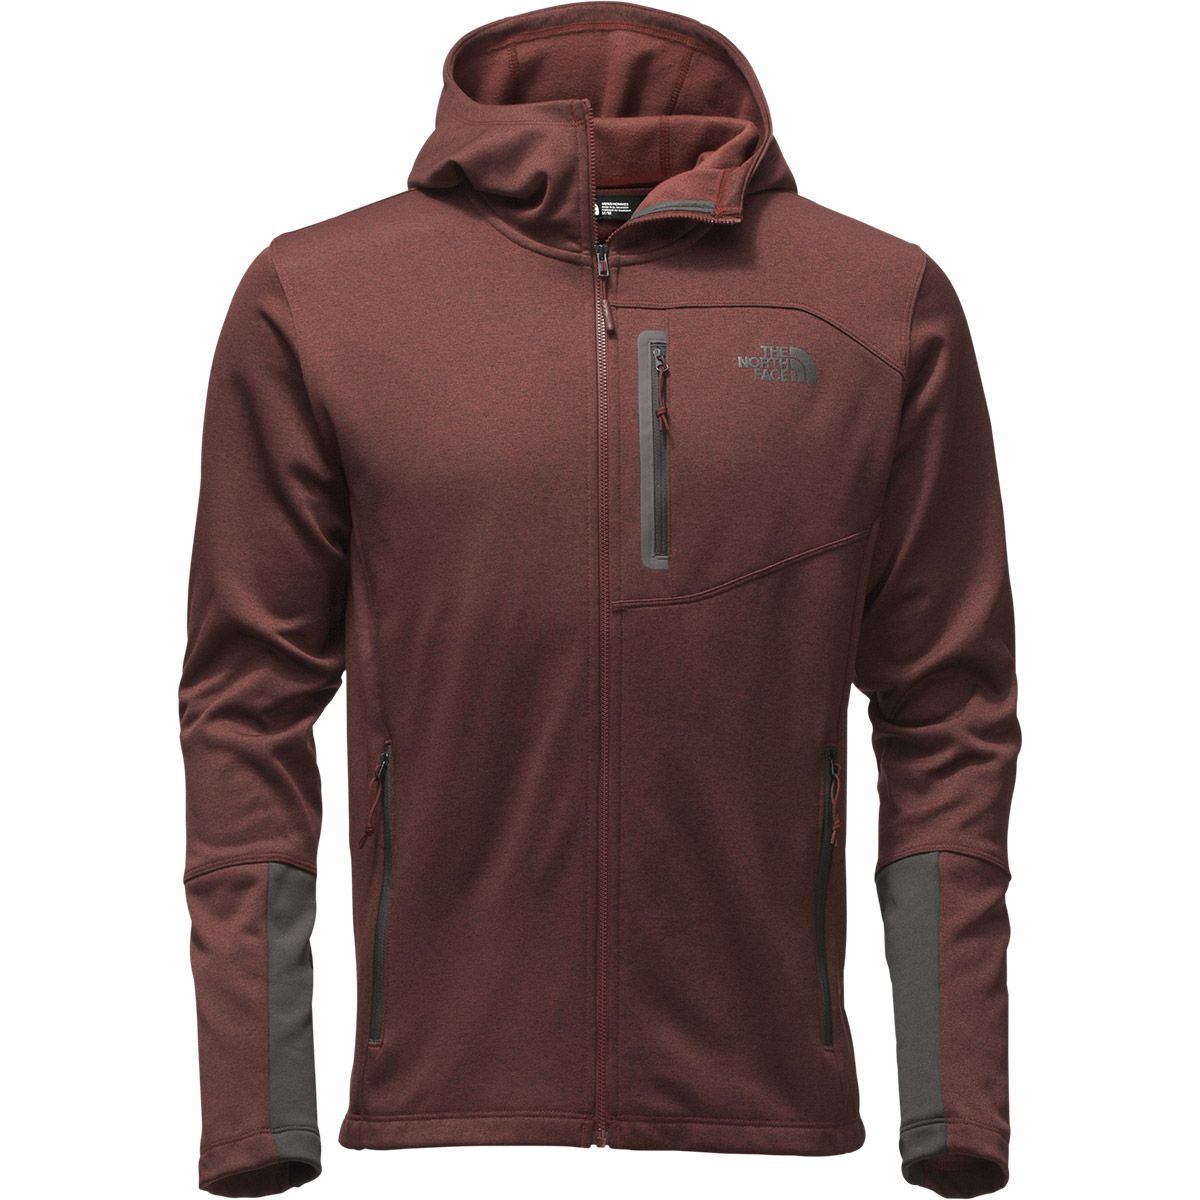 The north face menus canyonlands hoodie shop now for great deals